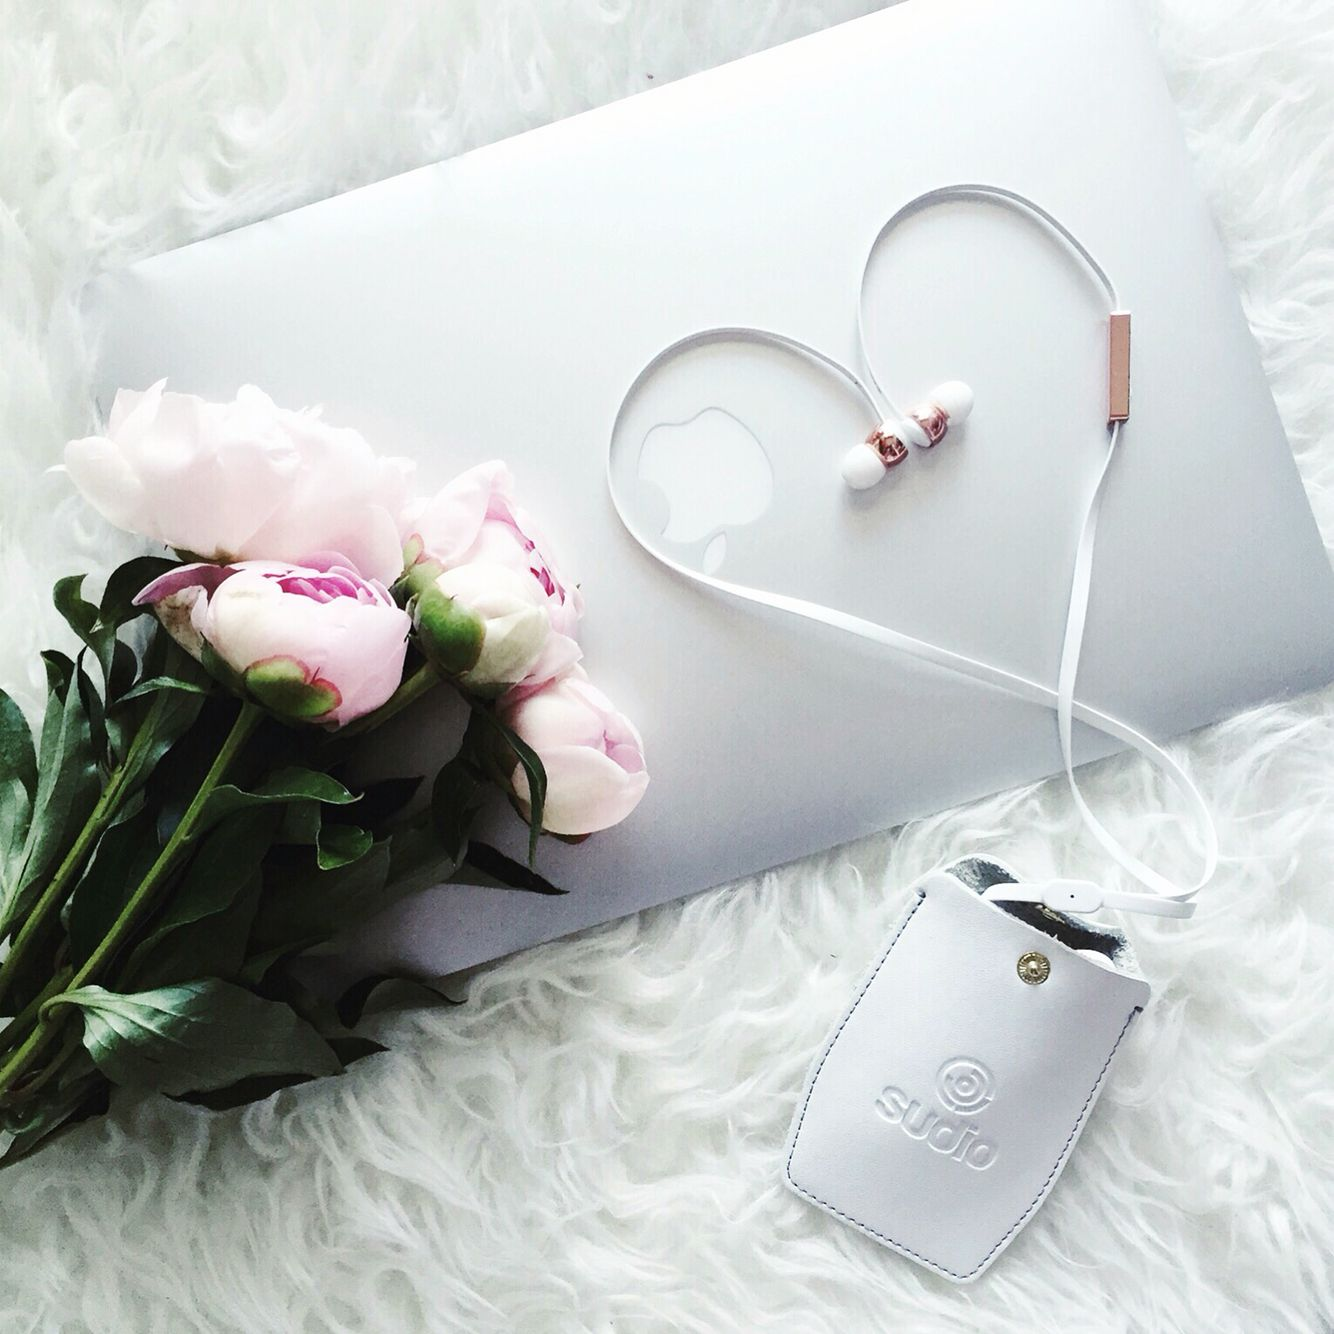 Use code brookehobbs for off sudio sweden earphones